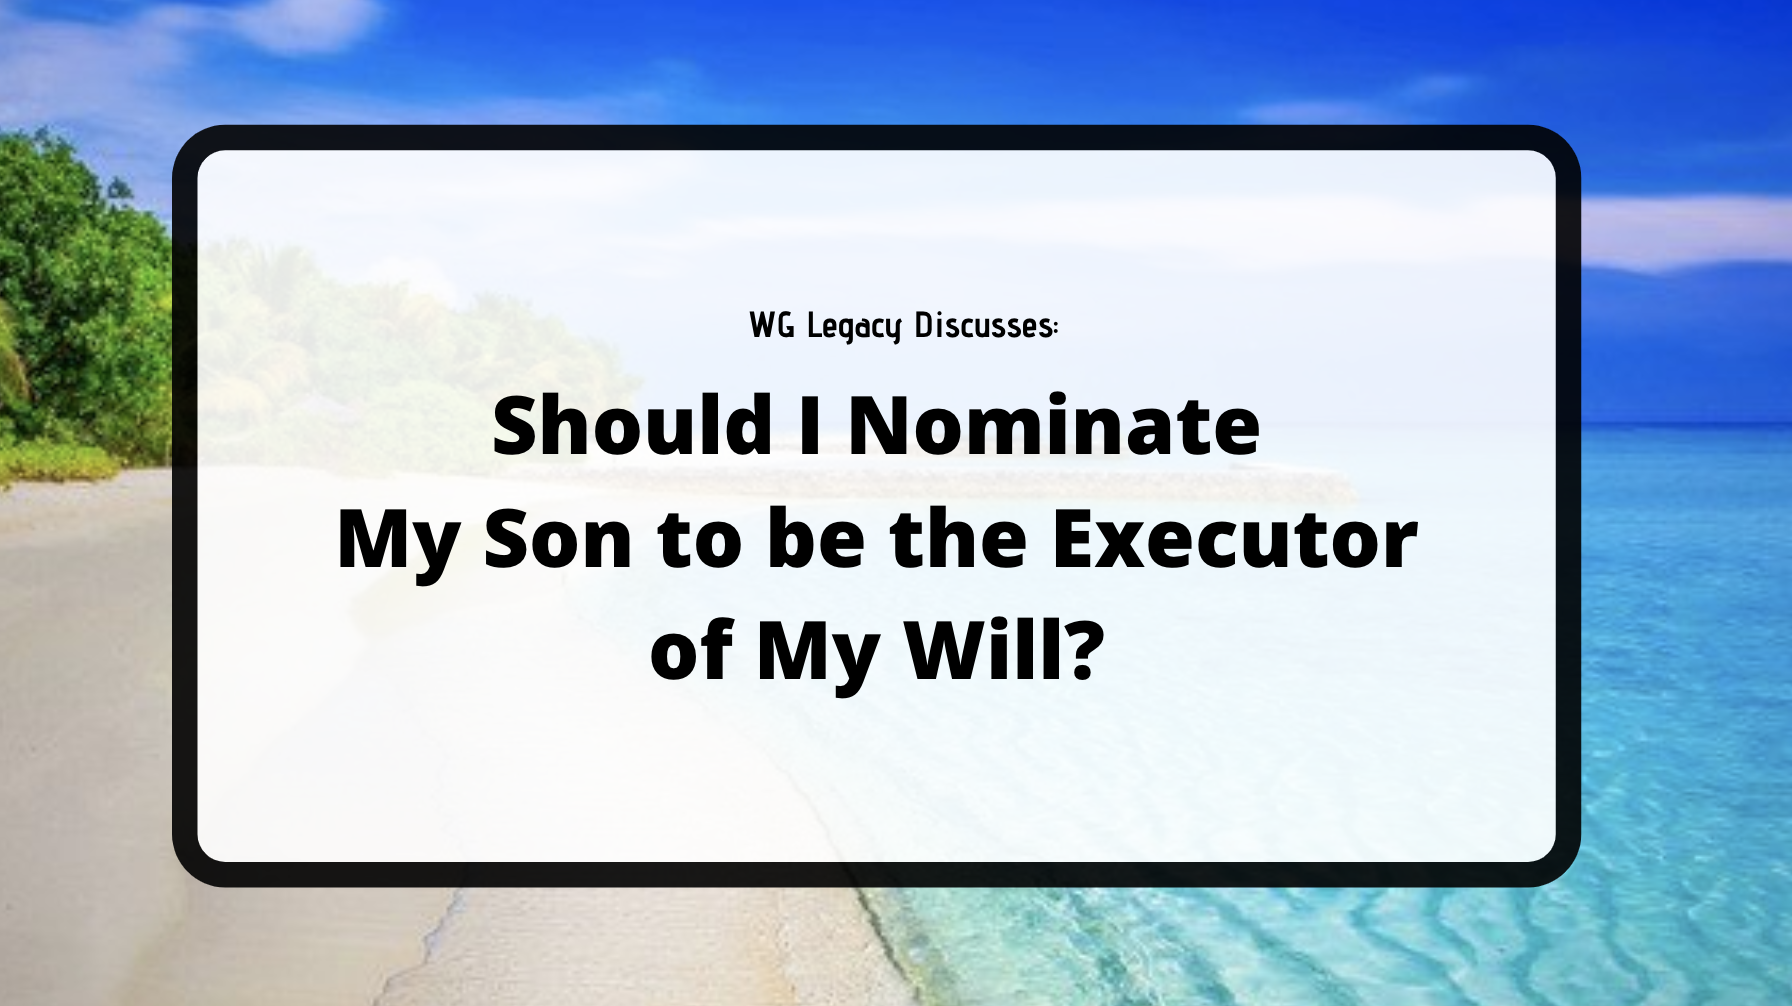 Should I Nominate My Son to be the Executor of My Will?